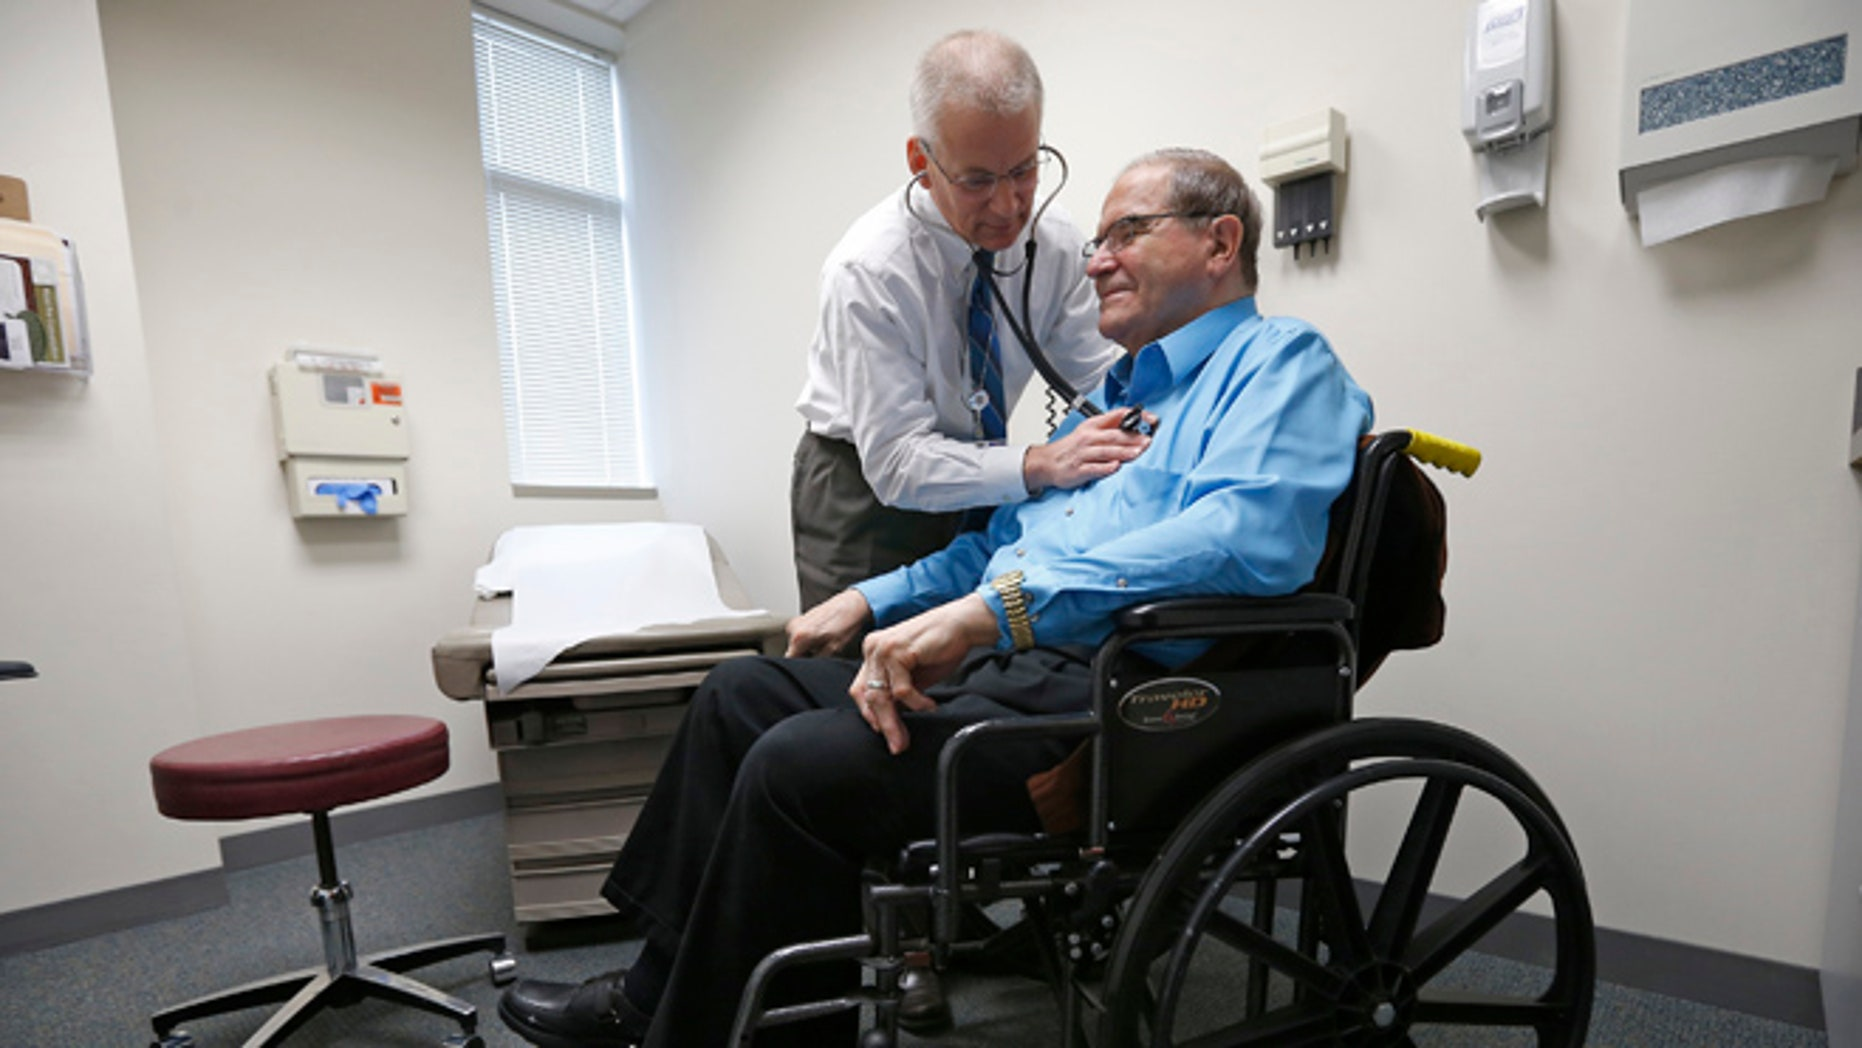 FILE: A doctor treats a patient at his office in Peoria, Illinois.